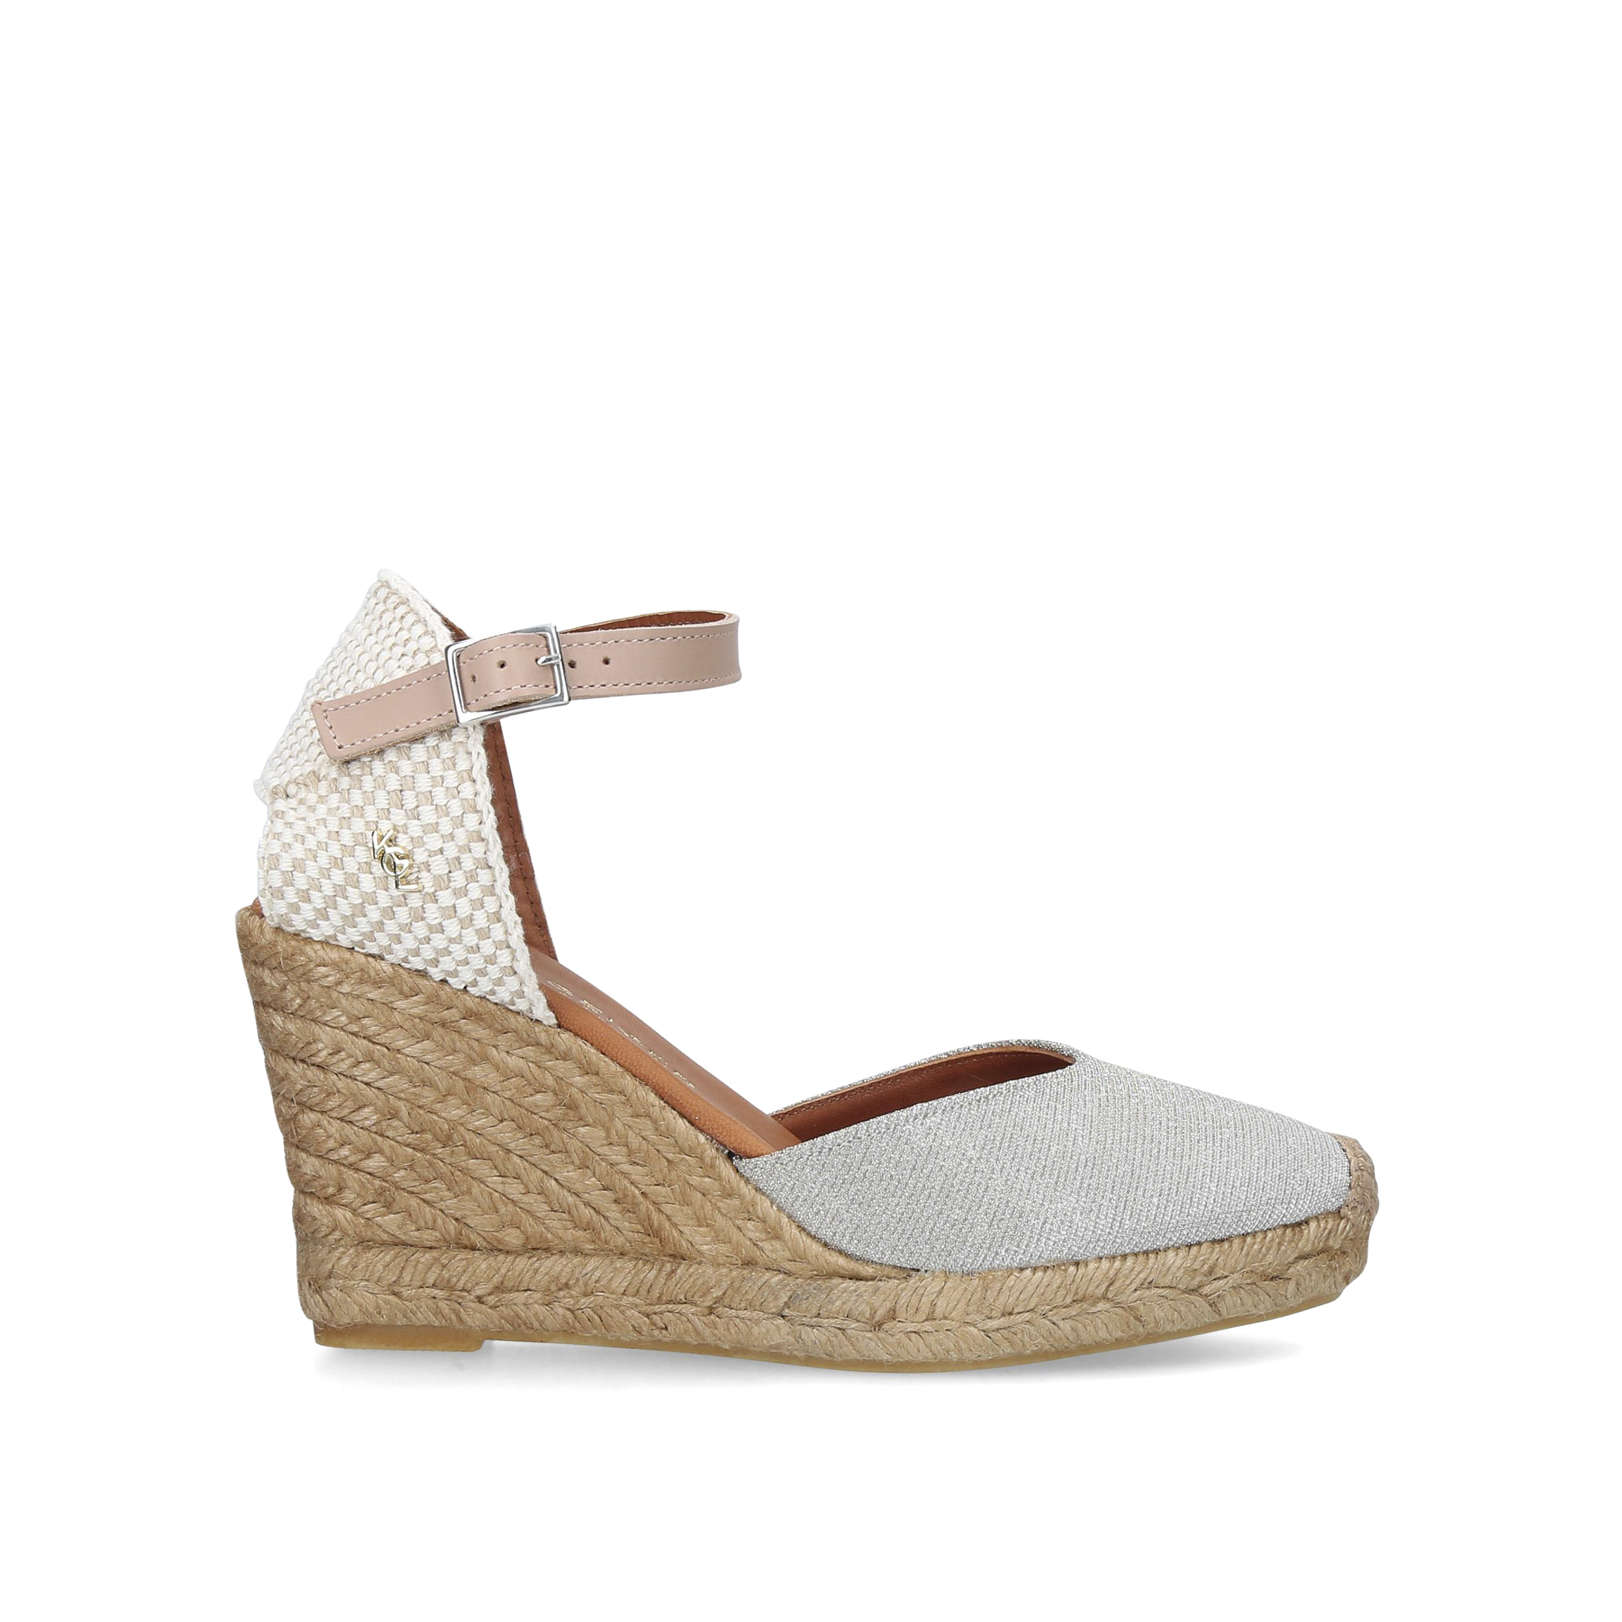 0afb8cdc895 Monty Espadrille Wedge Sandals